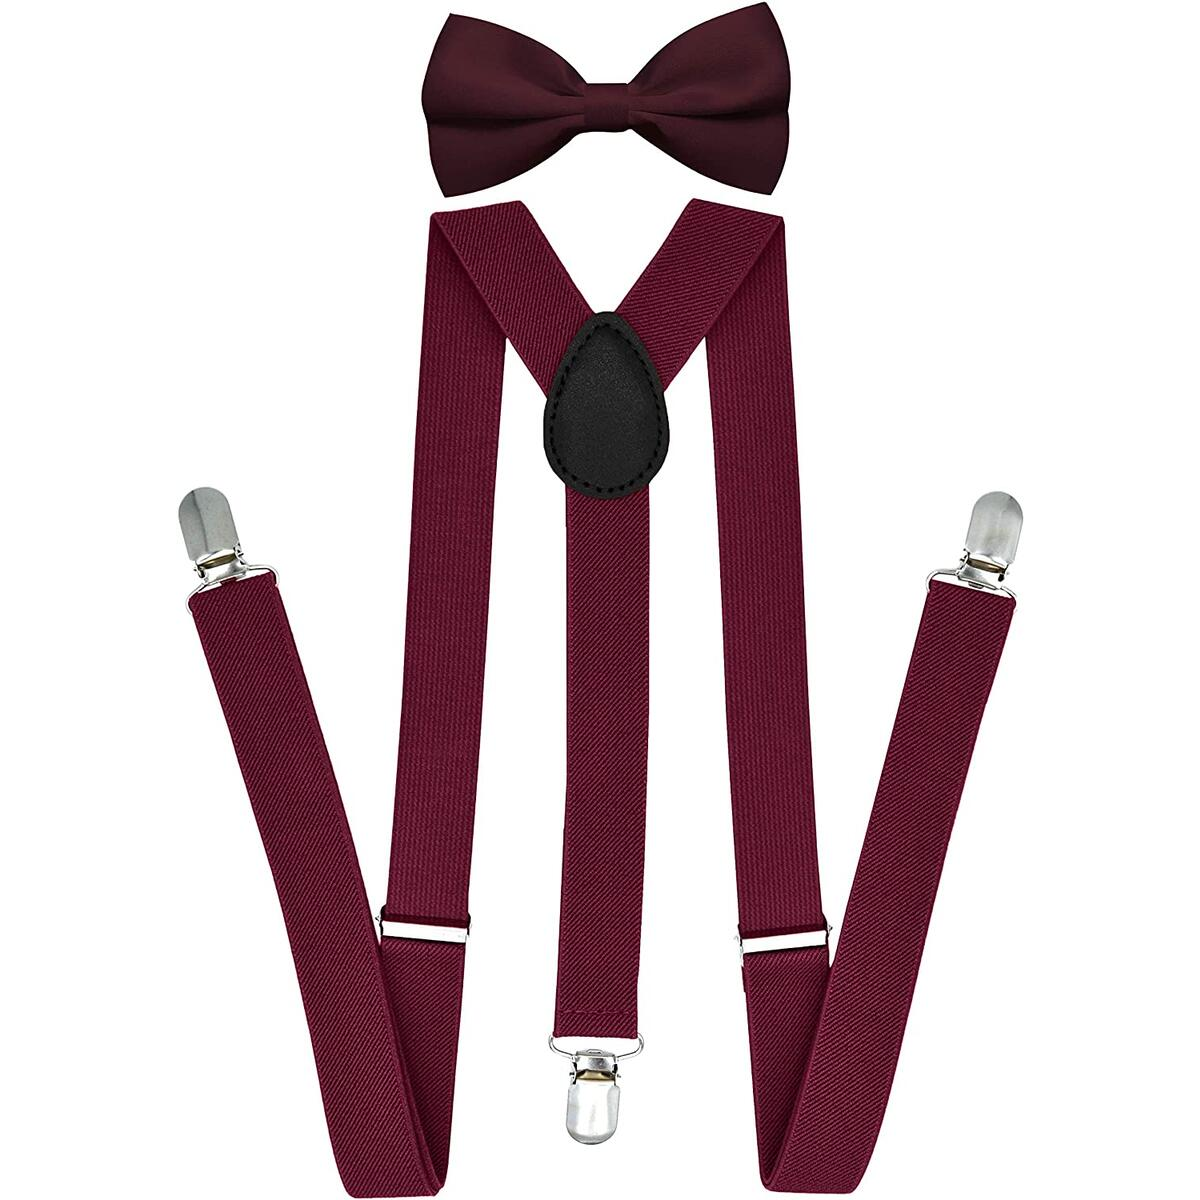 Trilece Suspenders for Men Adjustable Elastic Y Back Style Suspender and Bow tie sets - Burgundy